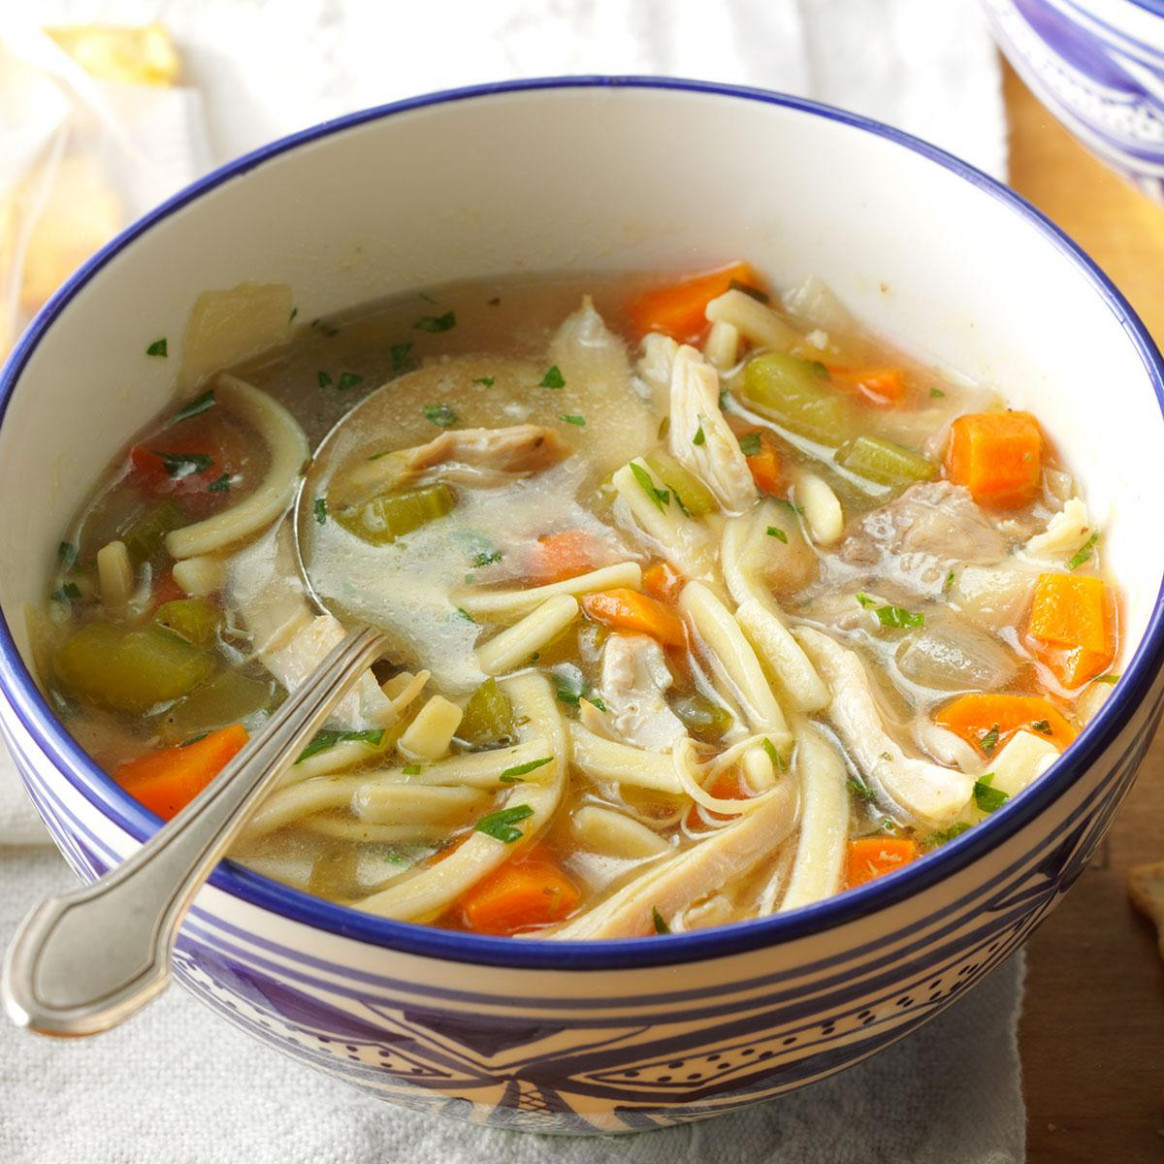 The Ultimate Chicken Noodle Soup - Recipes That Use Chicken Broth